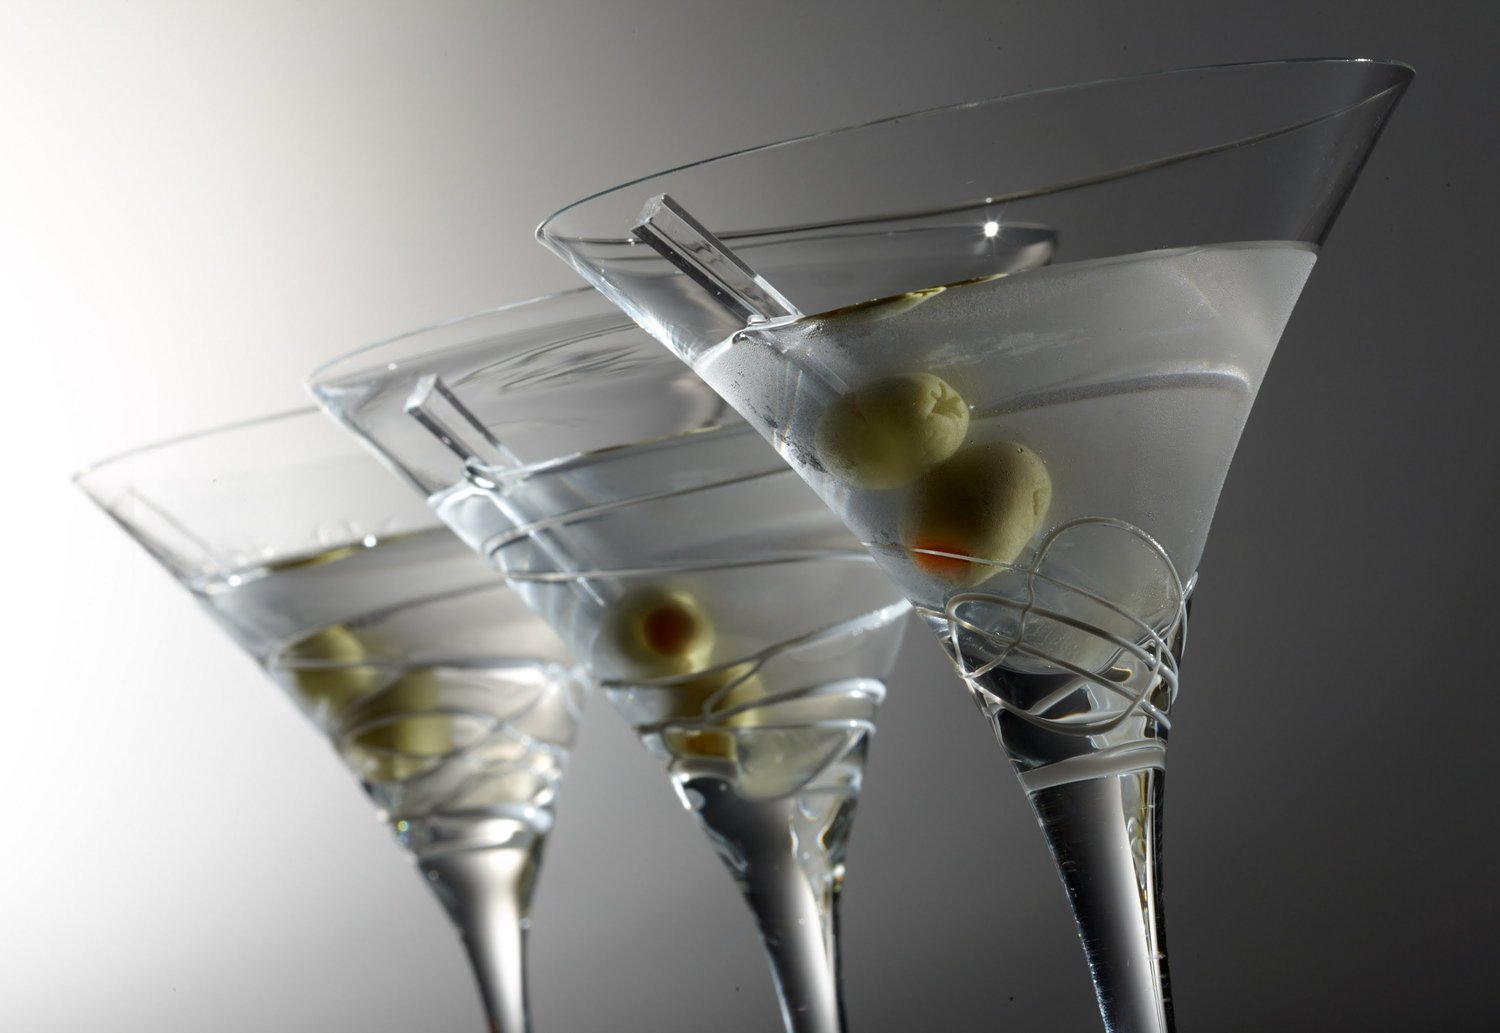 1. DRY MARTINI - The Dry Martini is a classic cocktail that, like a tailored suit, is timeless, it has maintained a place in cocktail history due to being easy to use and endlessly sophisticated.